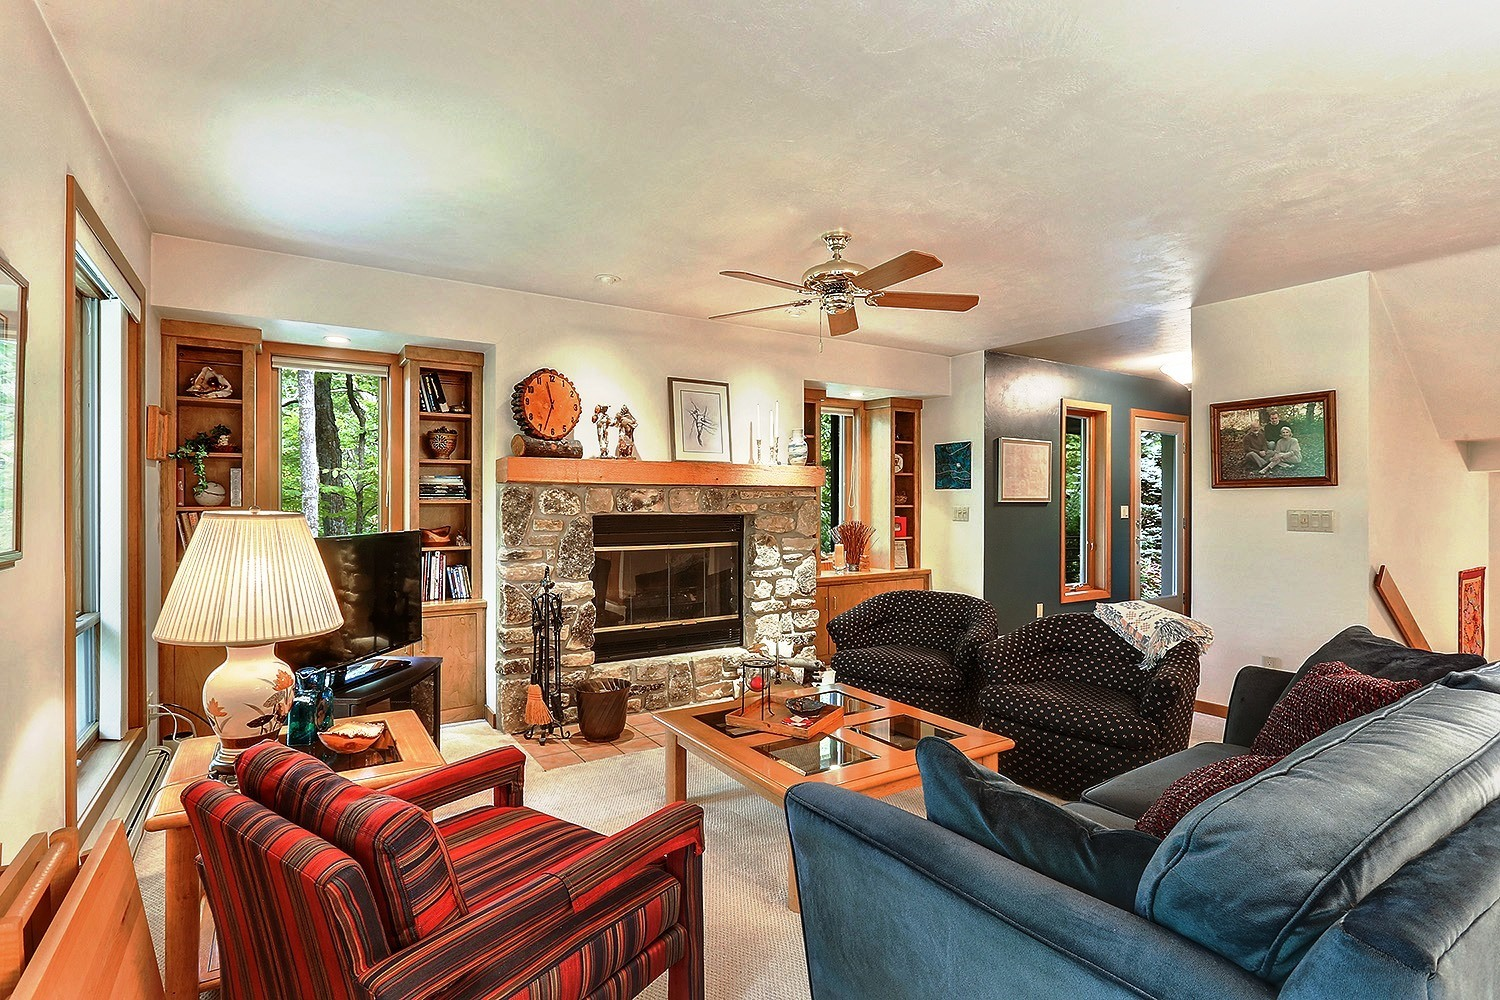 Sister Bay Home for sale with basement